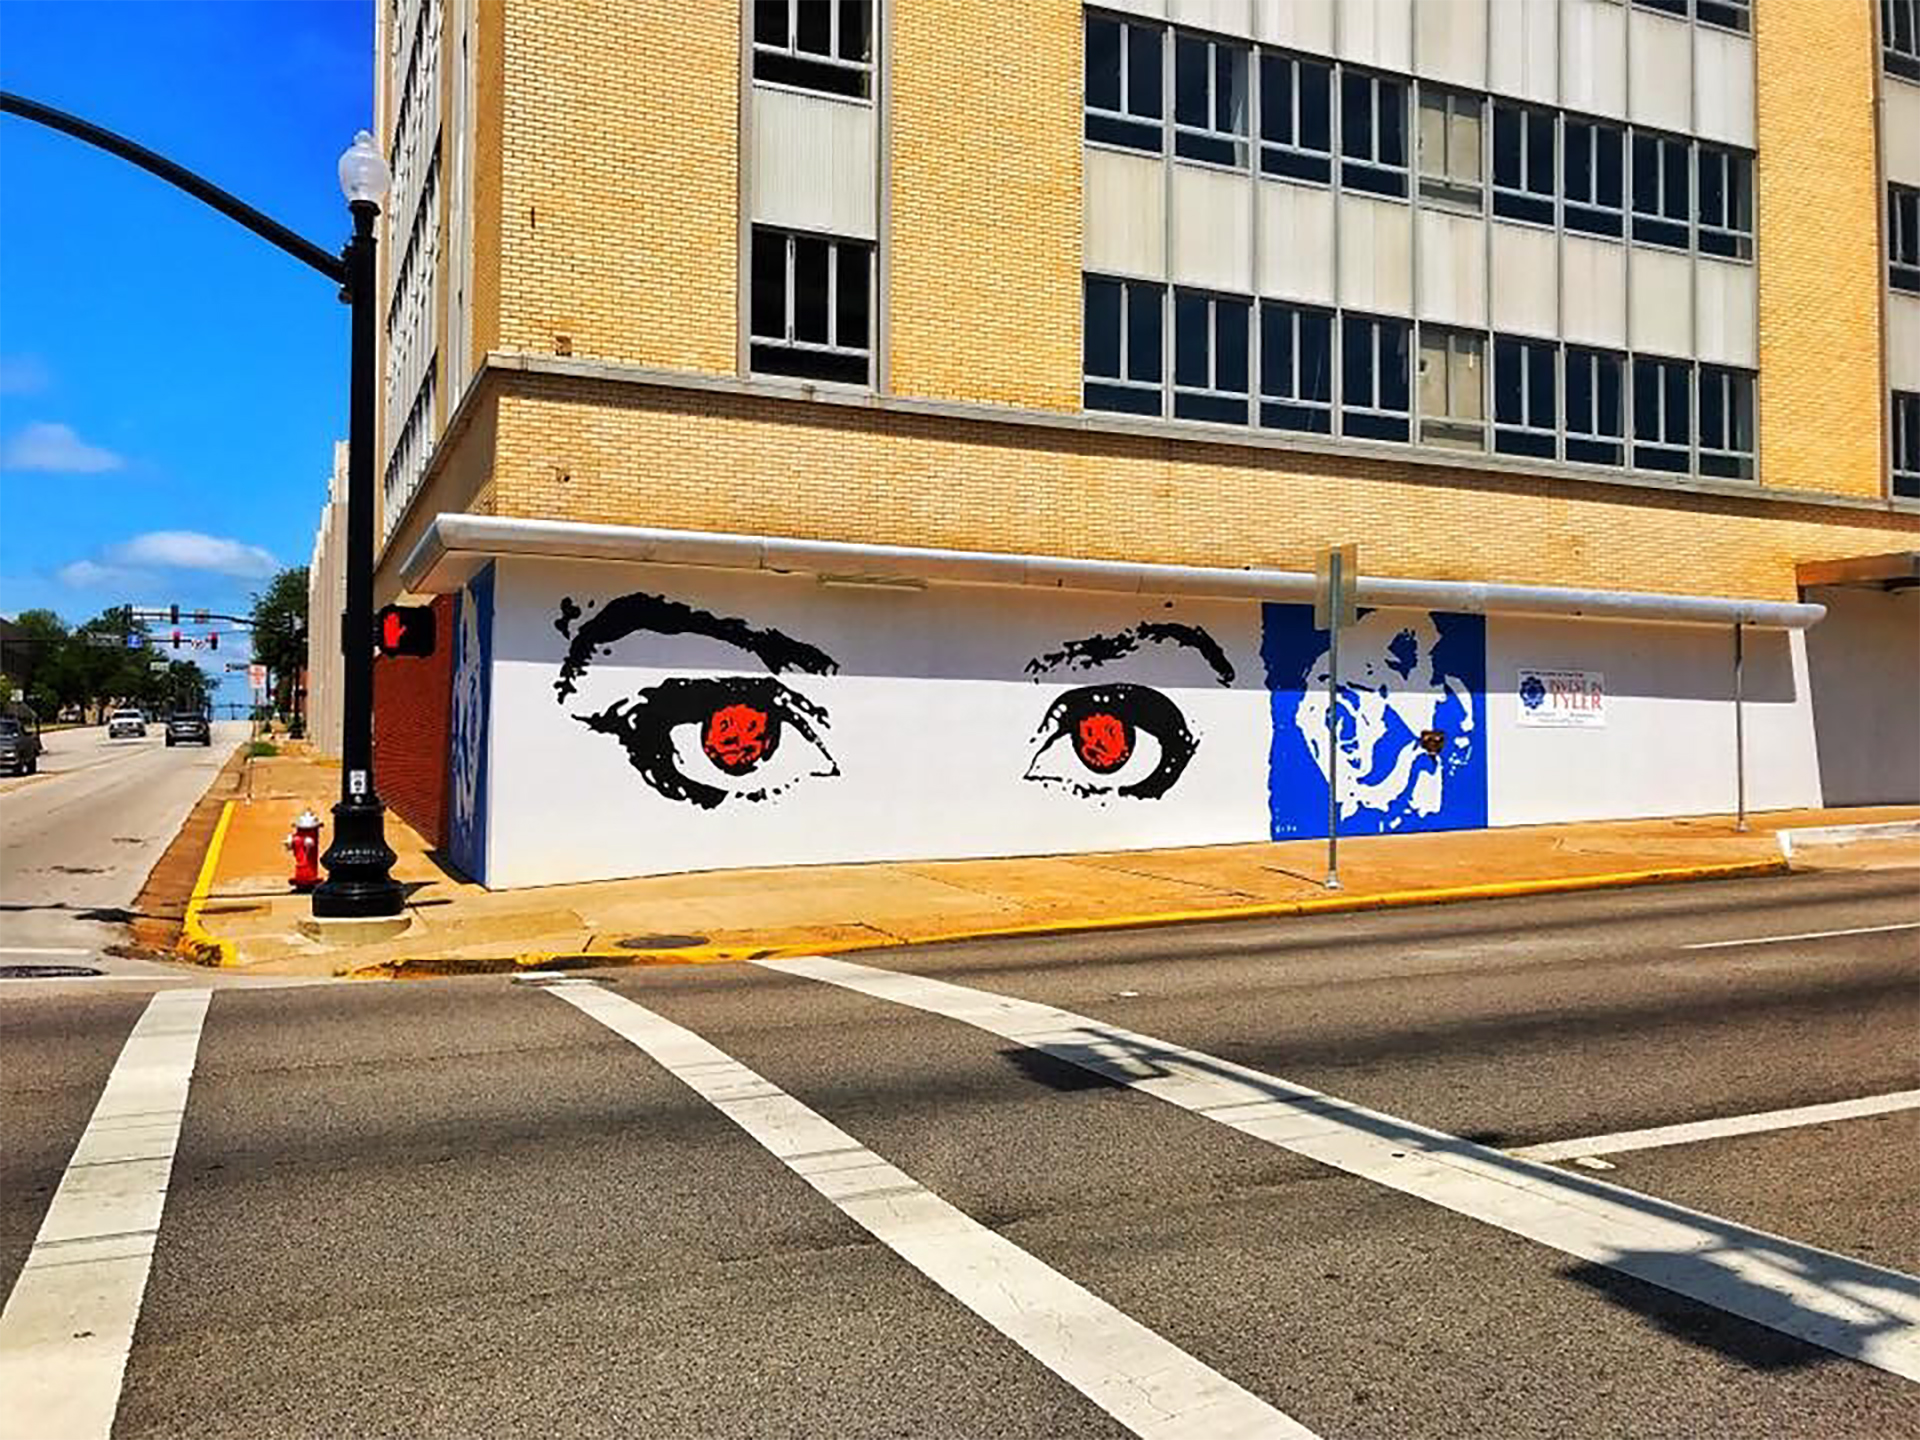 mural, eyes on the wall, roses